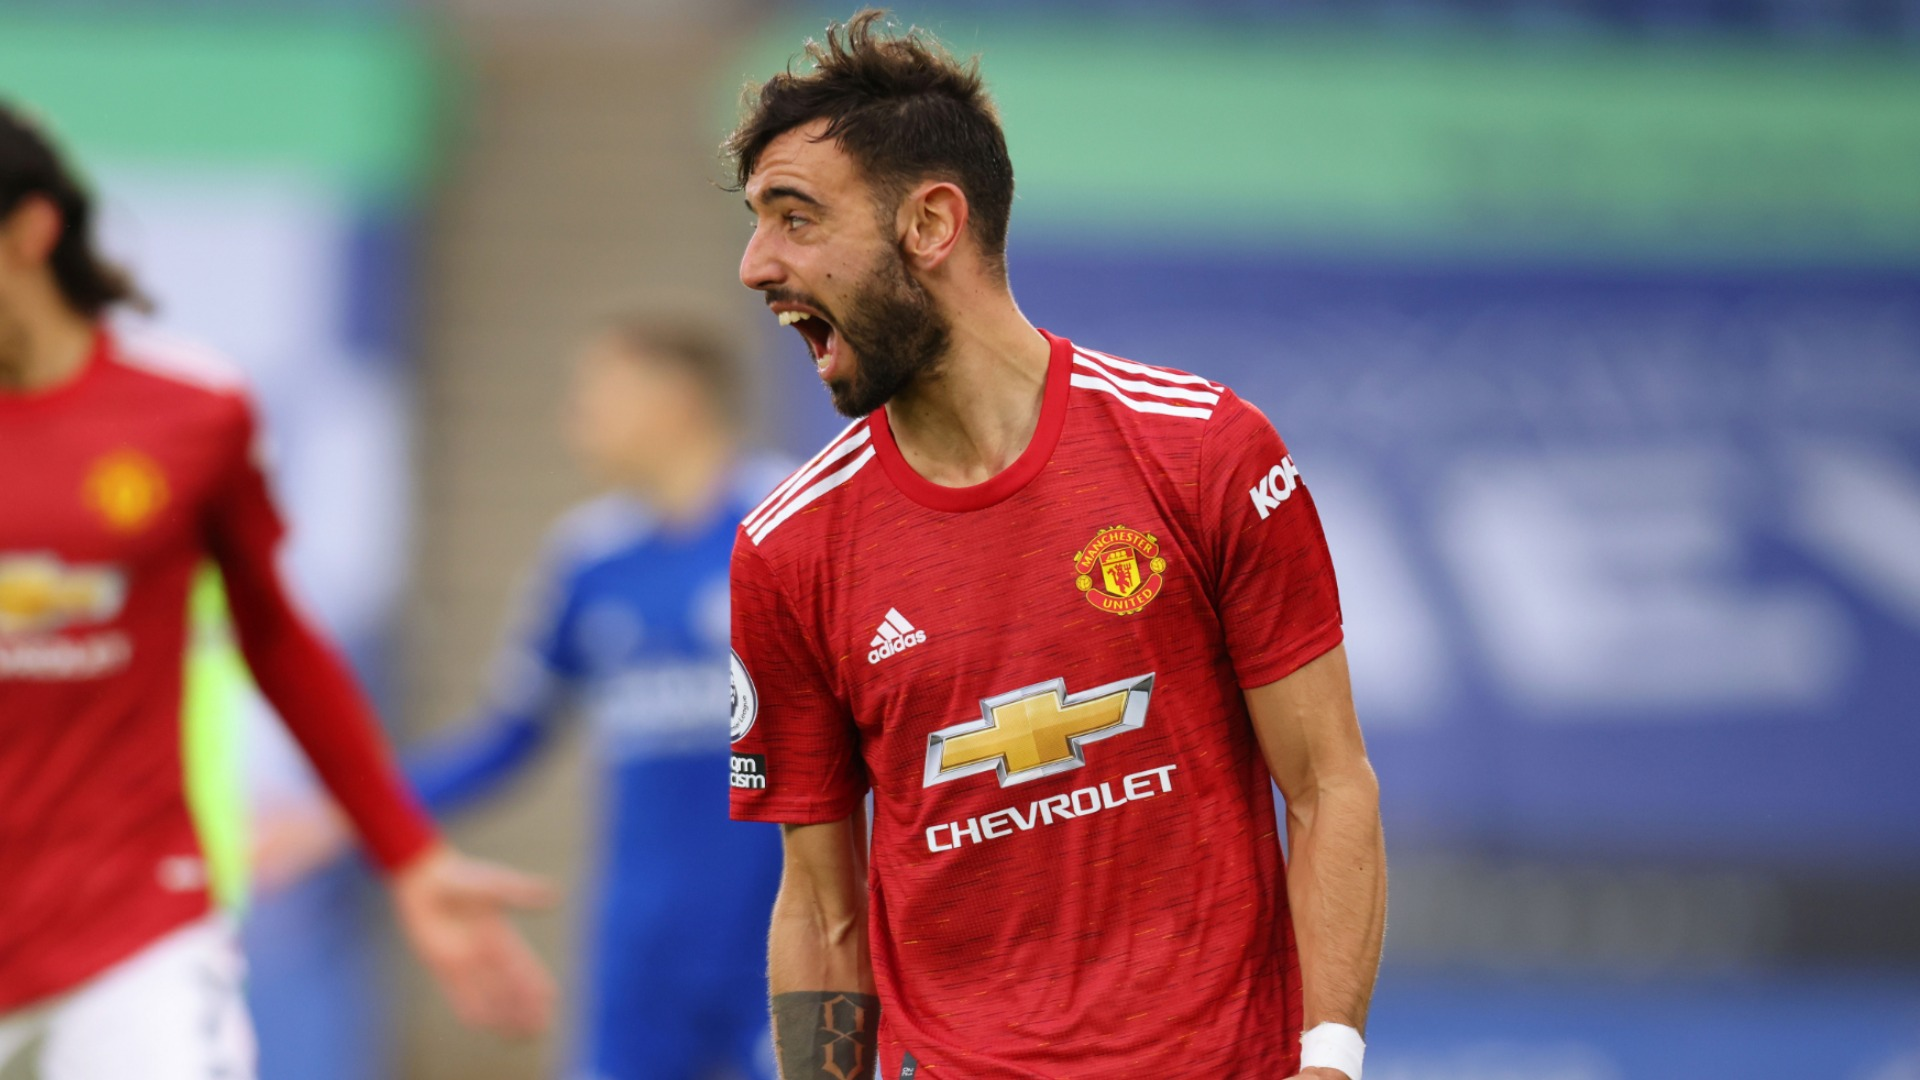 Burnley v Man United: Red Devils aiming to end long absence from Premier League summit